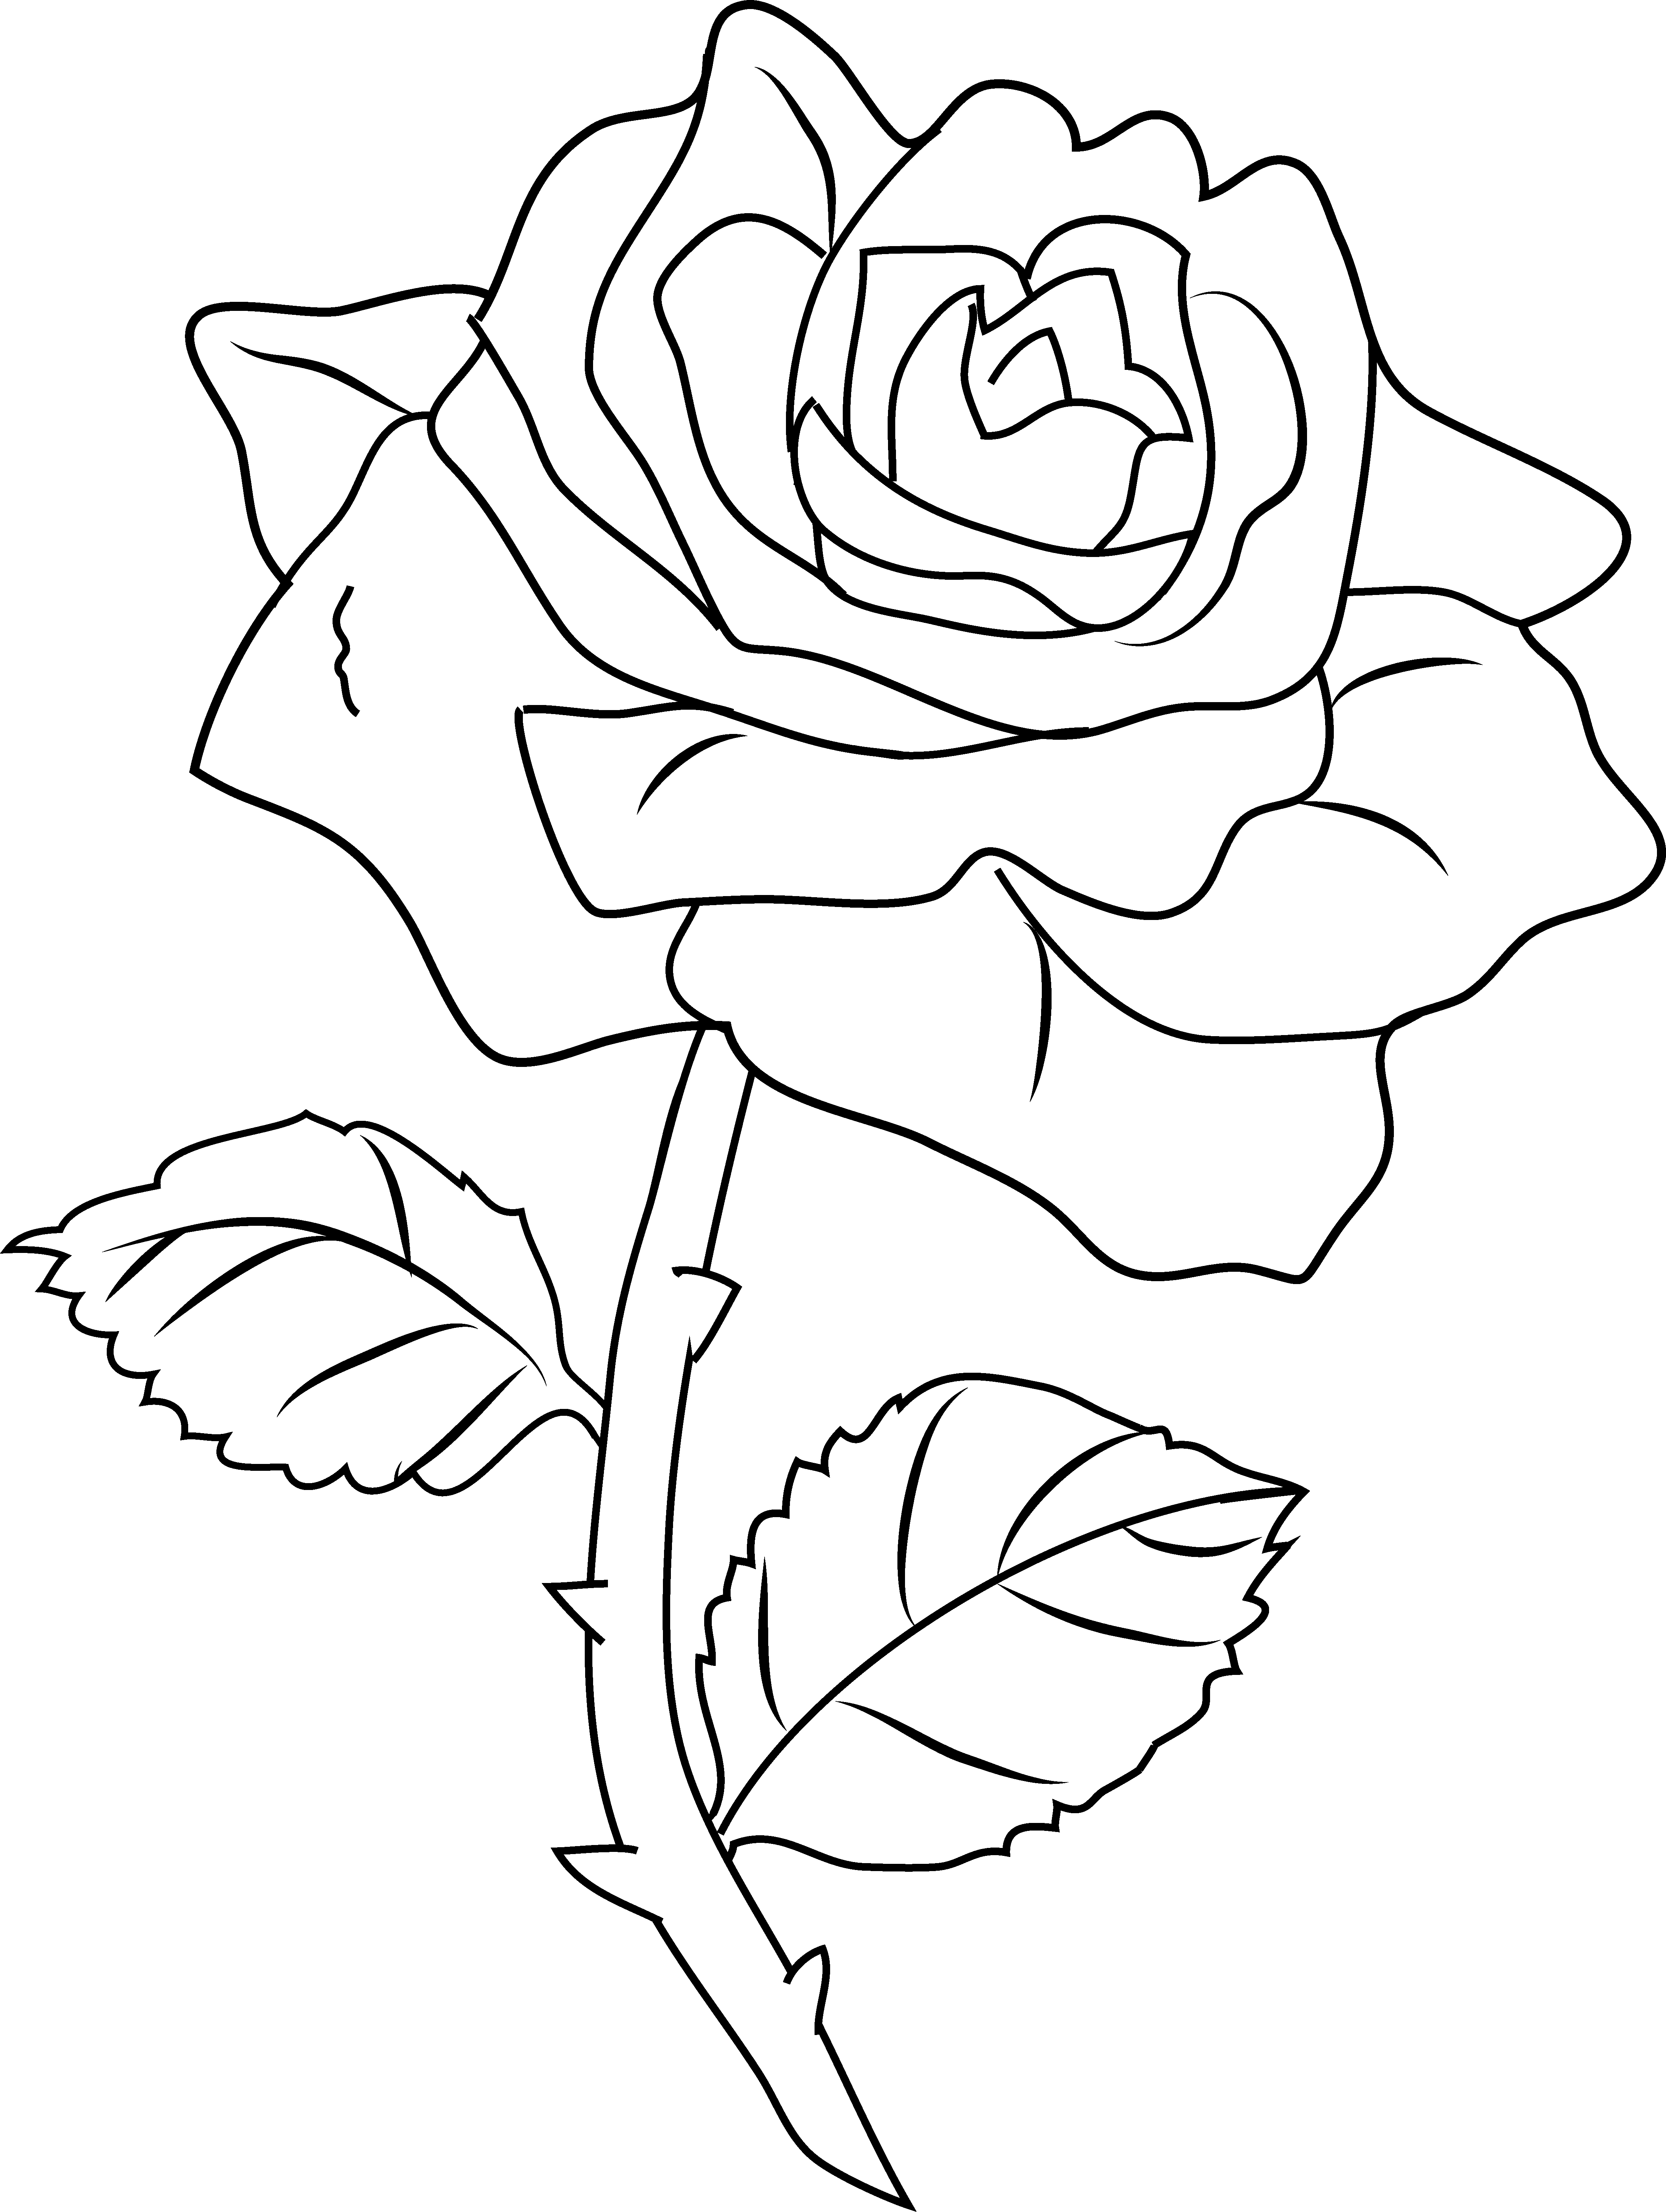 line art coloring pages : Free Coloring.